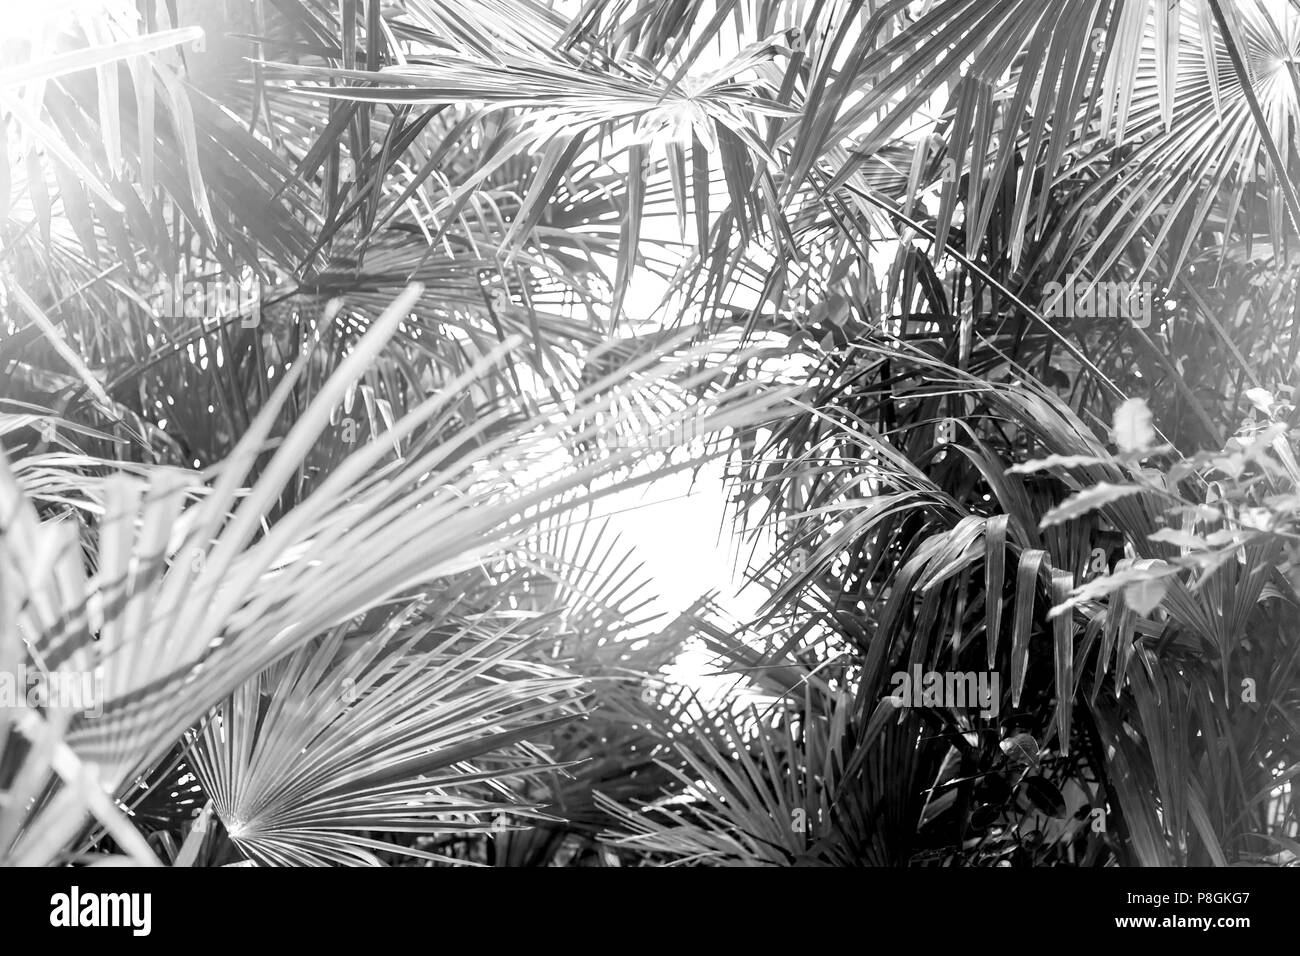 Palm tree leaves background stock image